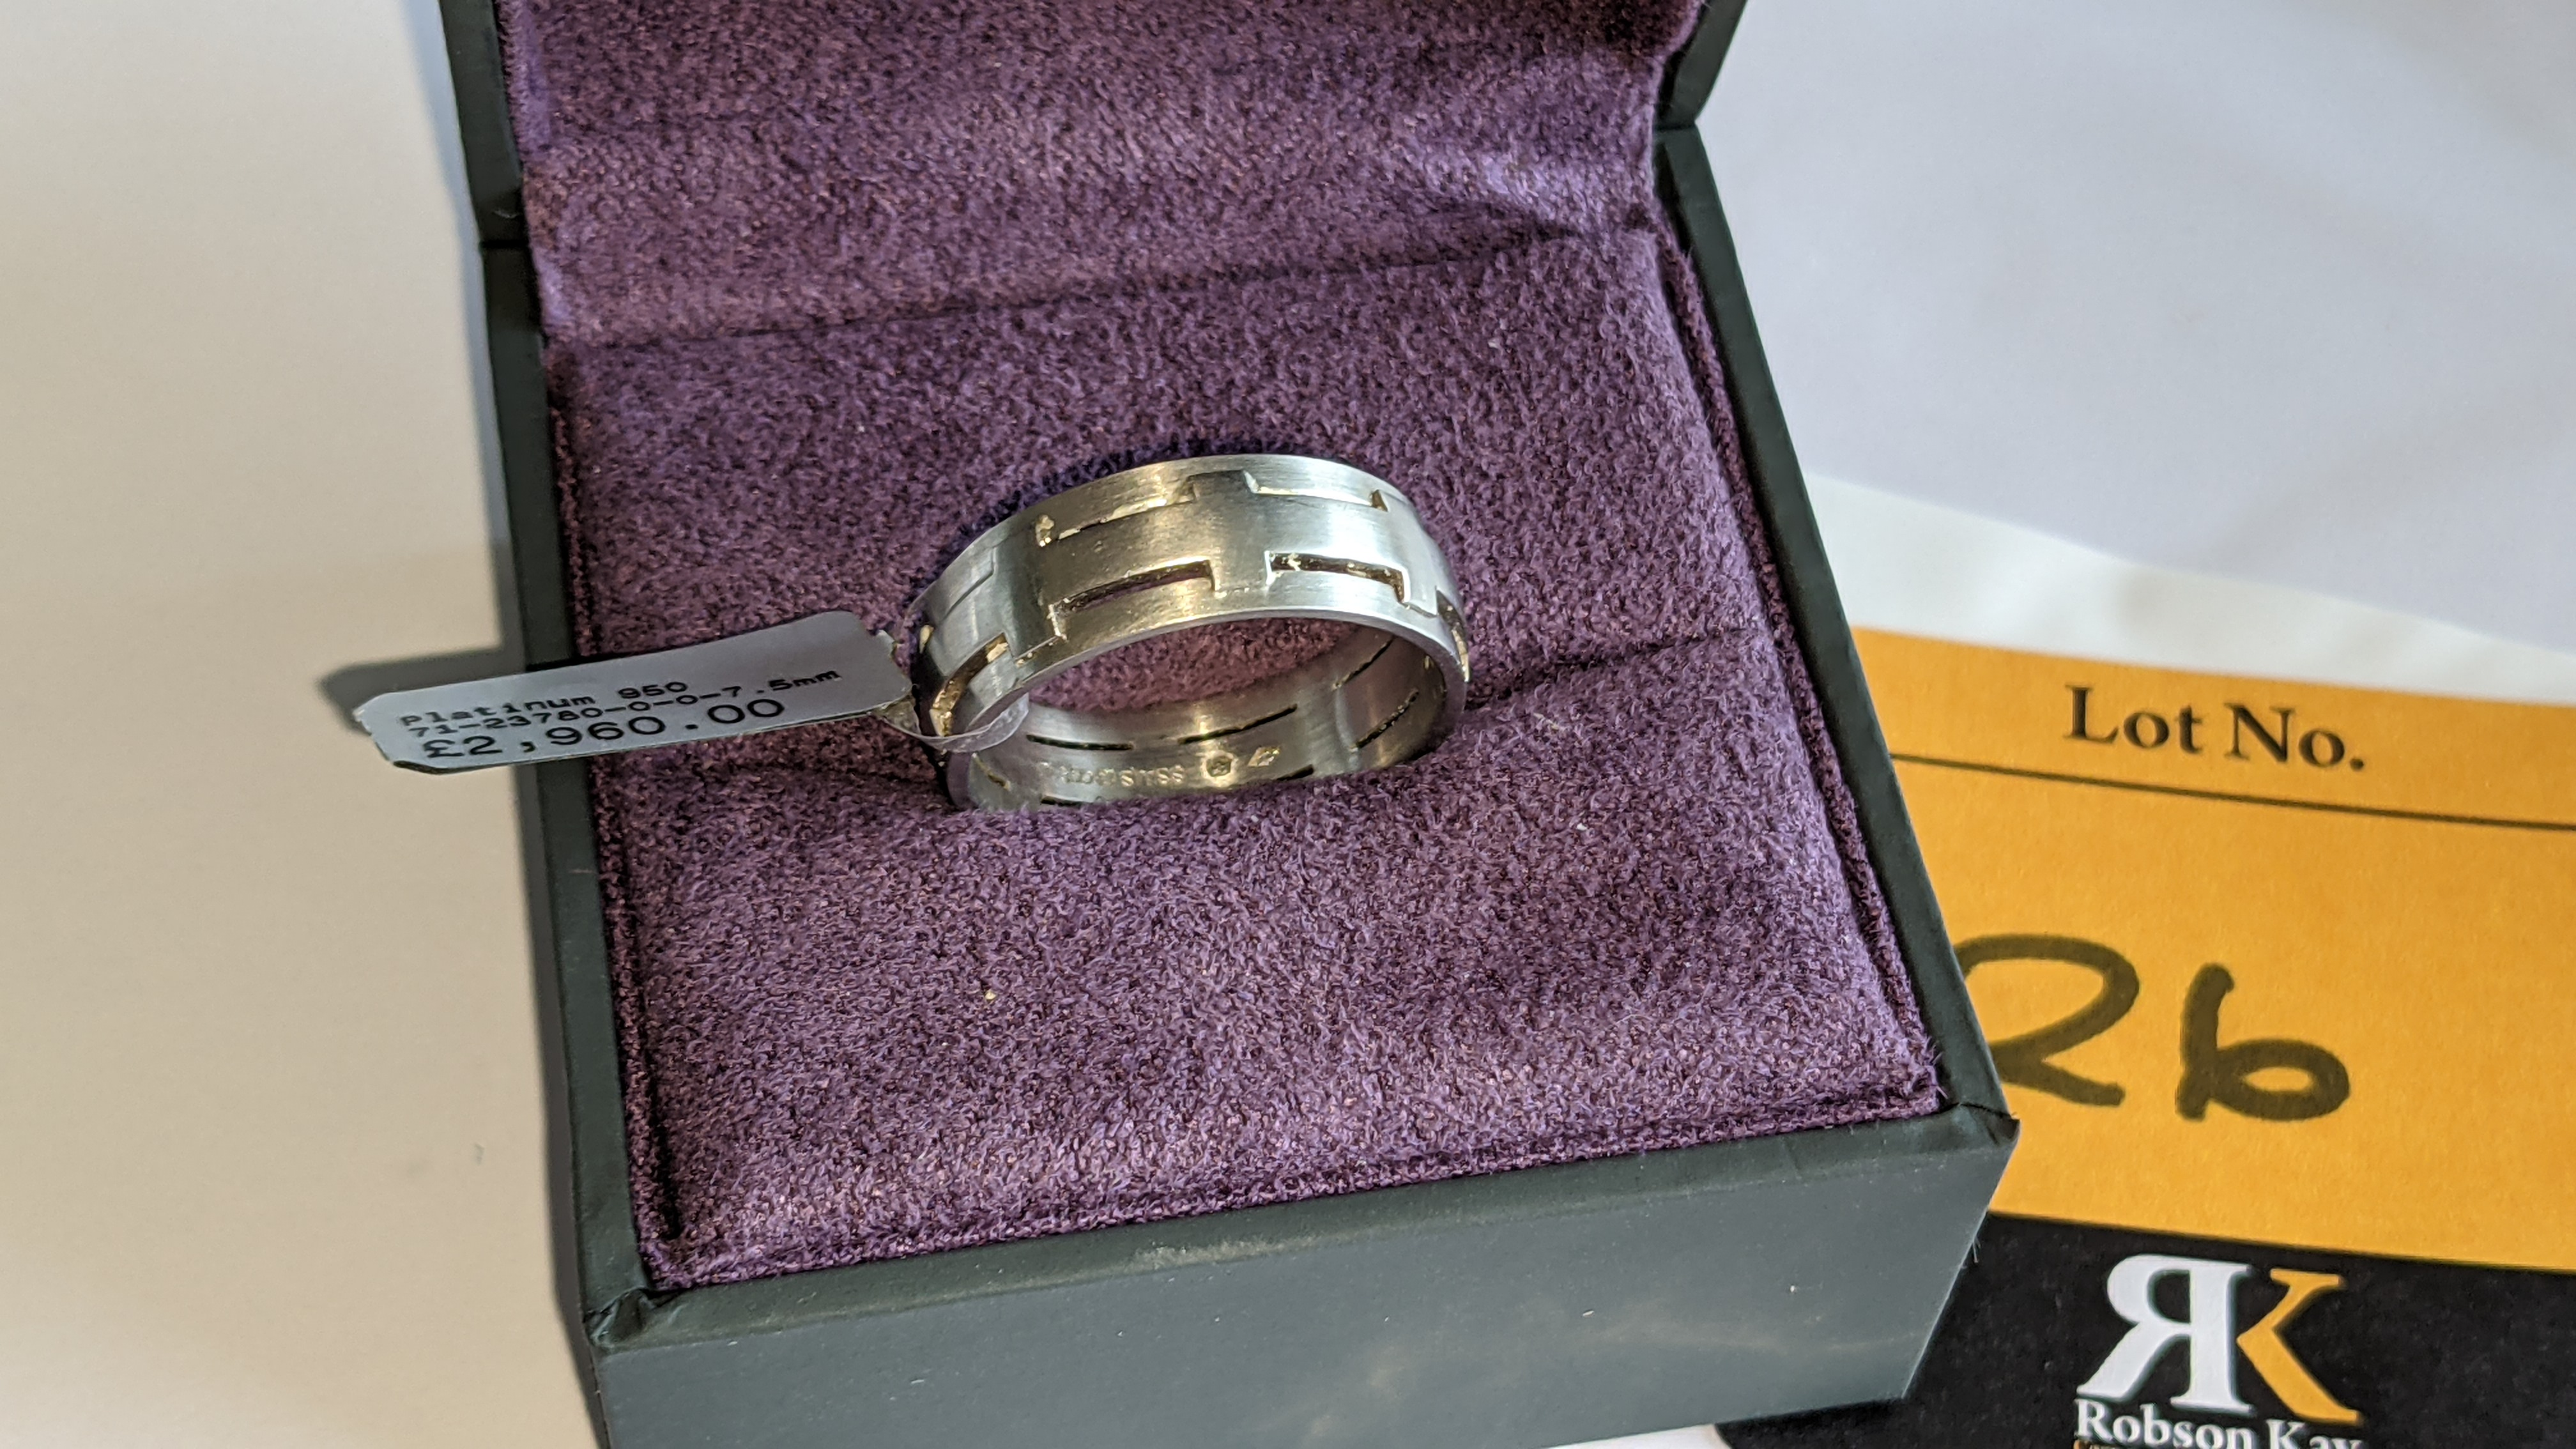 Platinum 950 ring in matt & polished finish, 7.5mm wide. RRP £2,960 - Image 4 of 15